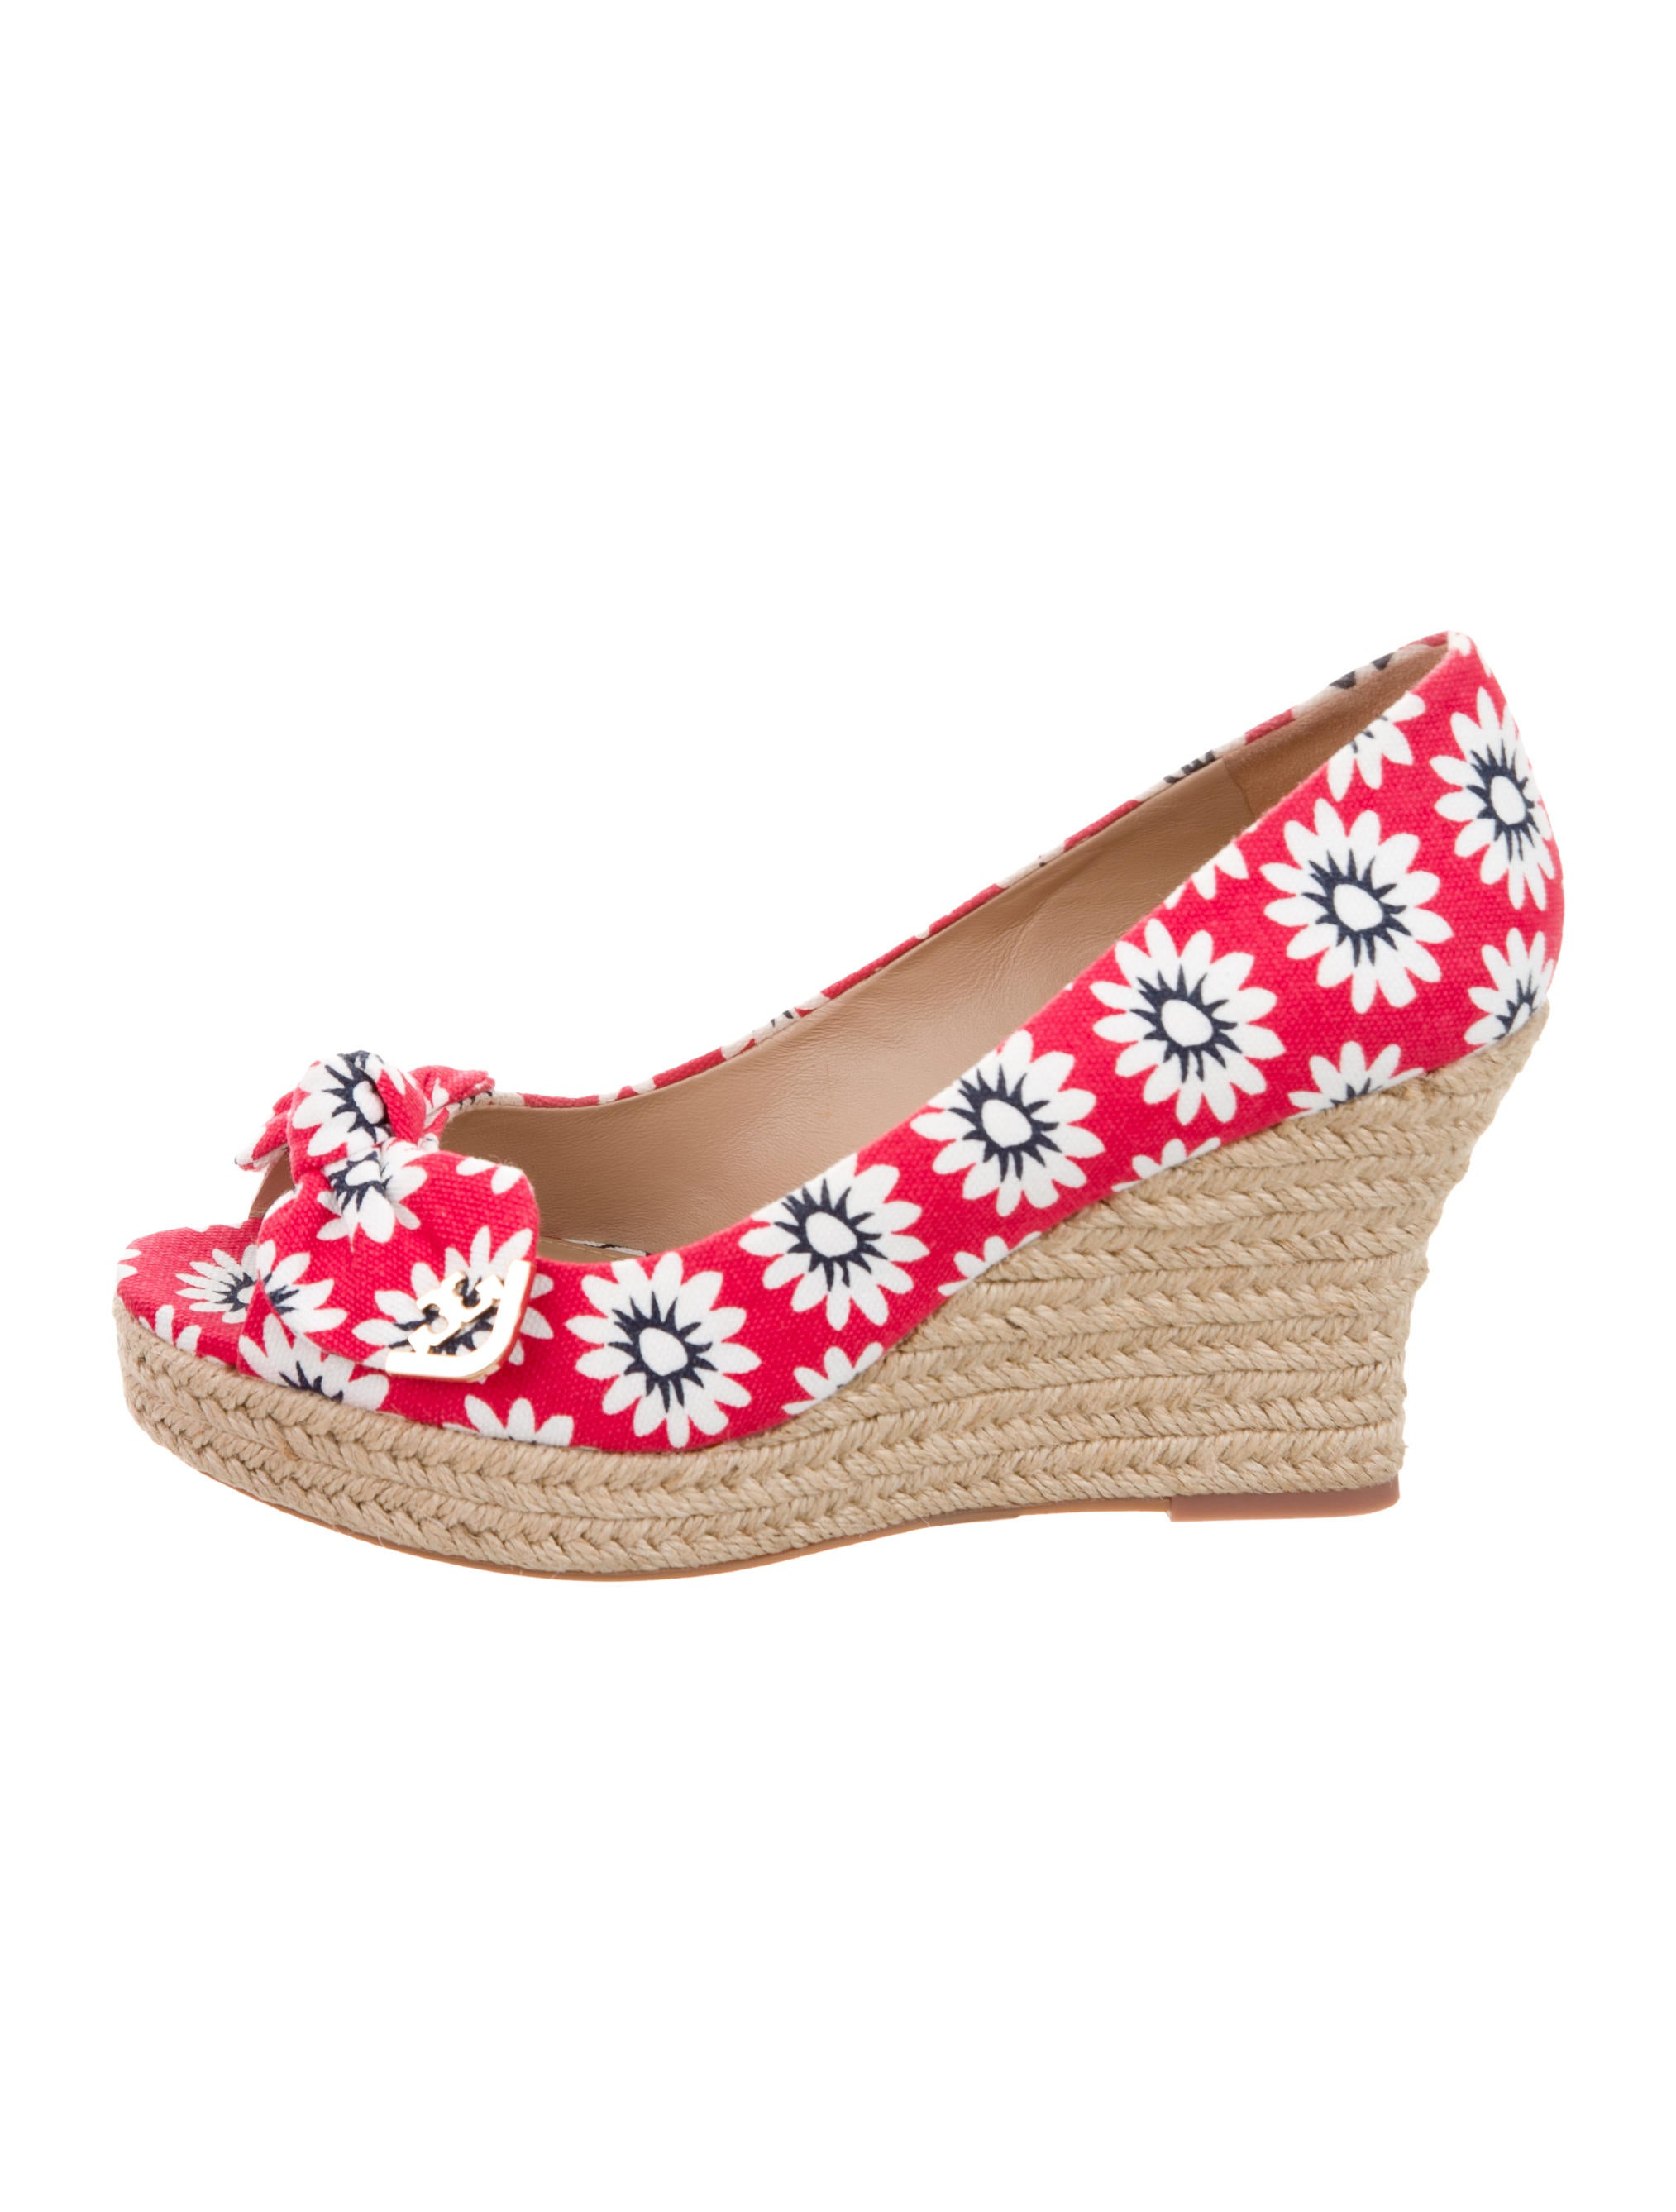 8b91c2cda27a Tory Burch Dory Espadrille Wedges w  Tags - Shoes - WTO102143